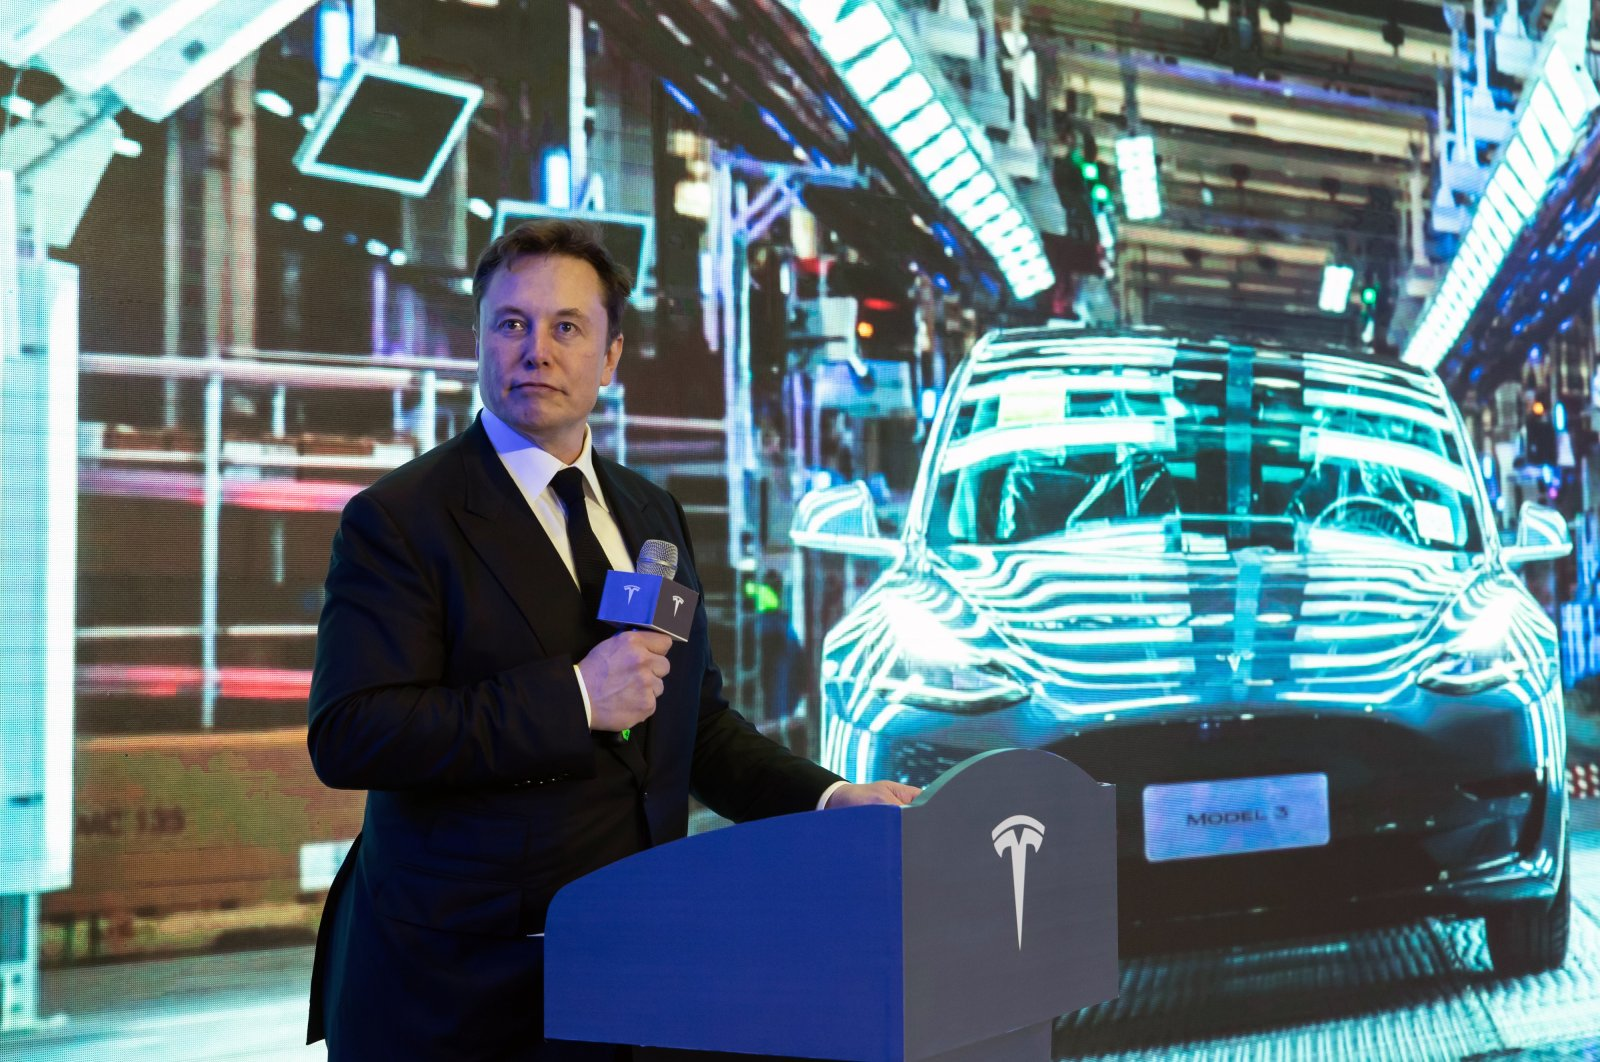 Elon Musk delivers a speech at the delivery ceremony of the first batch of Shanghai made Tesla Model 3 sedans in Shanghai, China, Jan. 7, 2020. (EPA Photo)